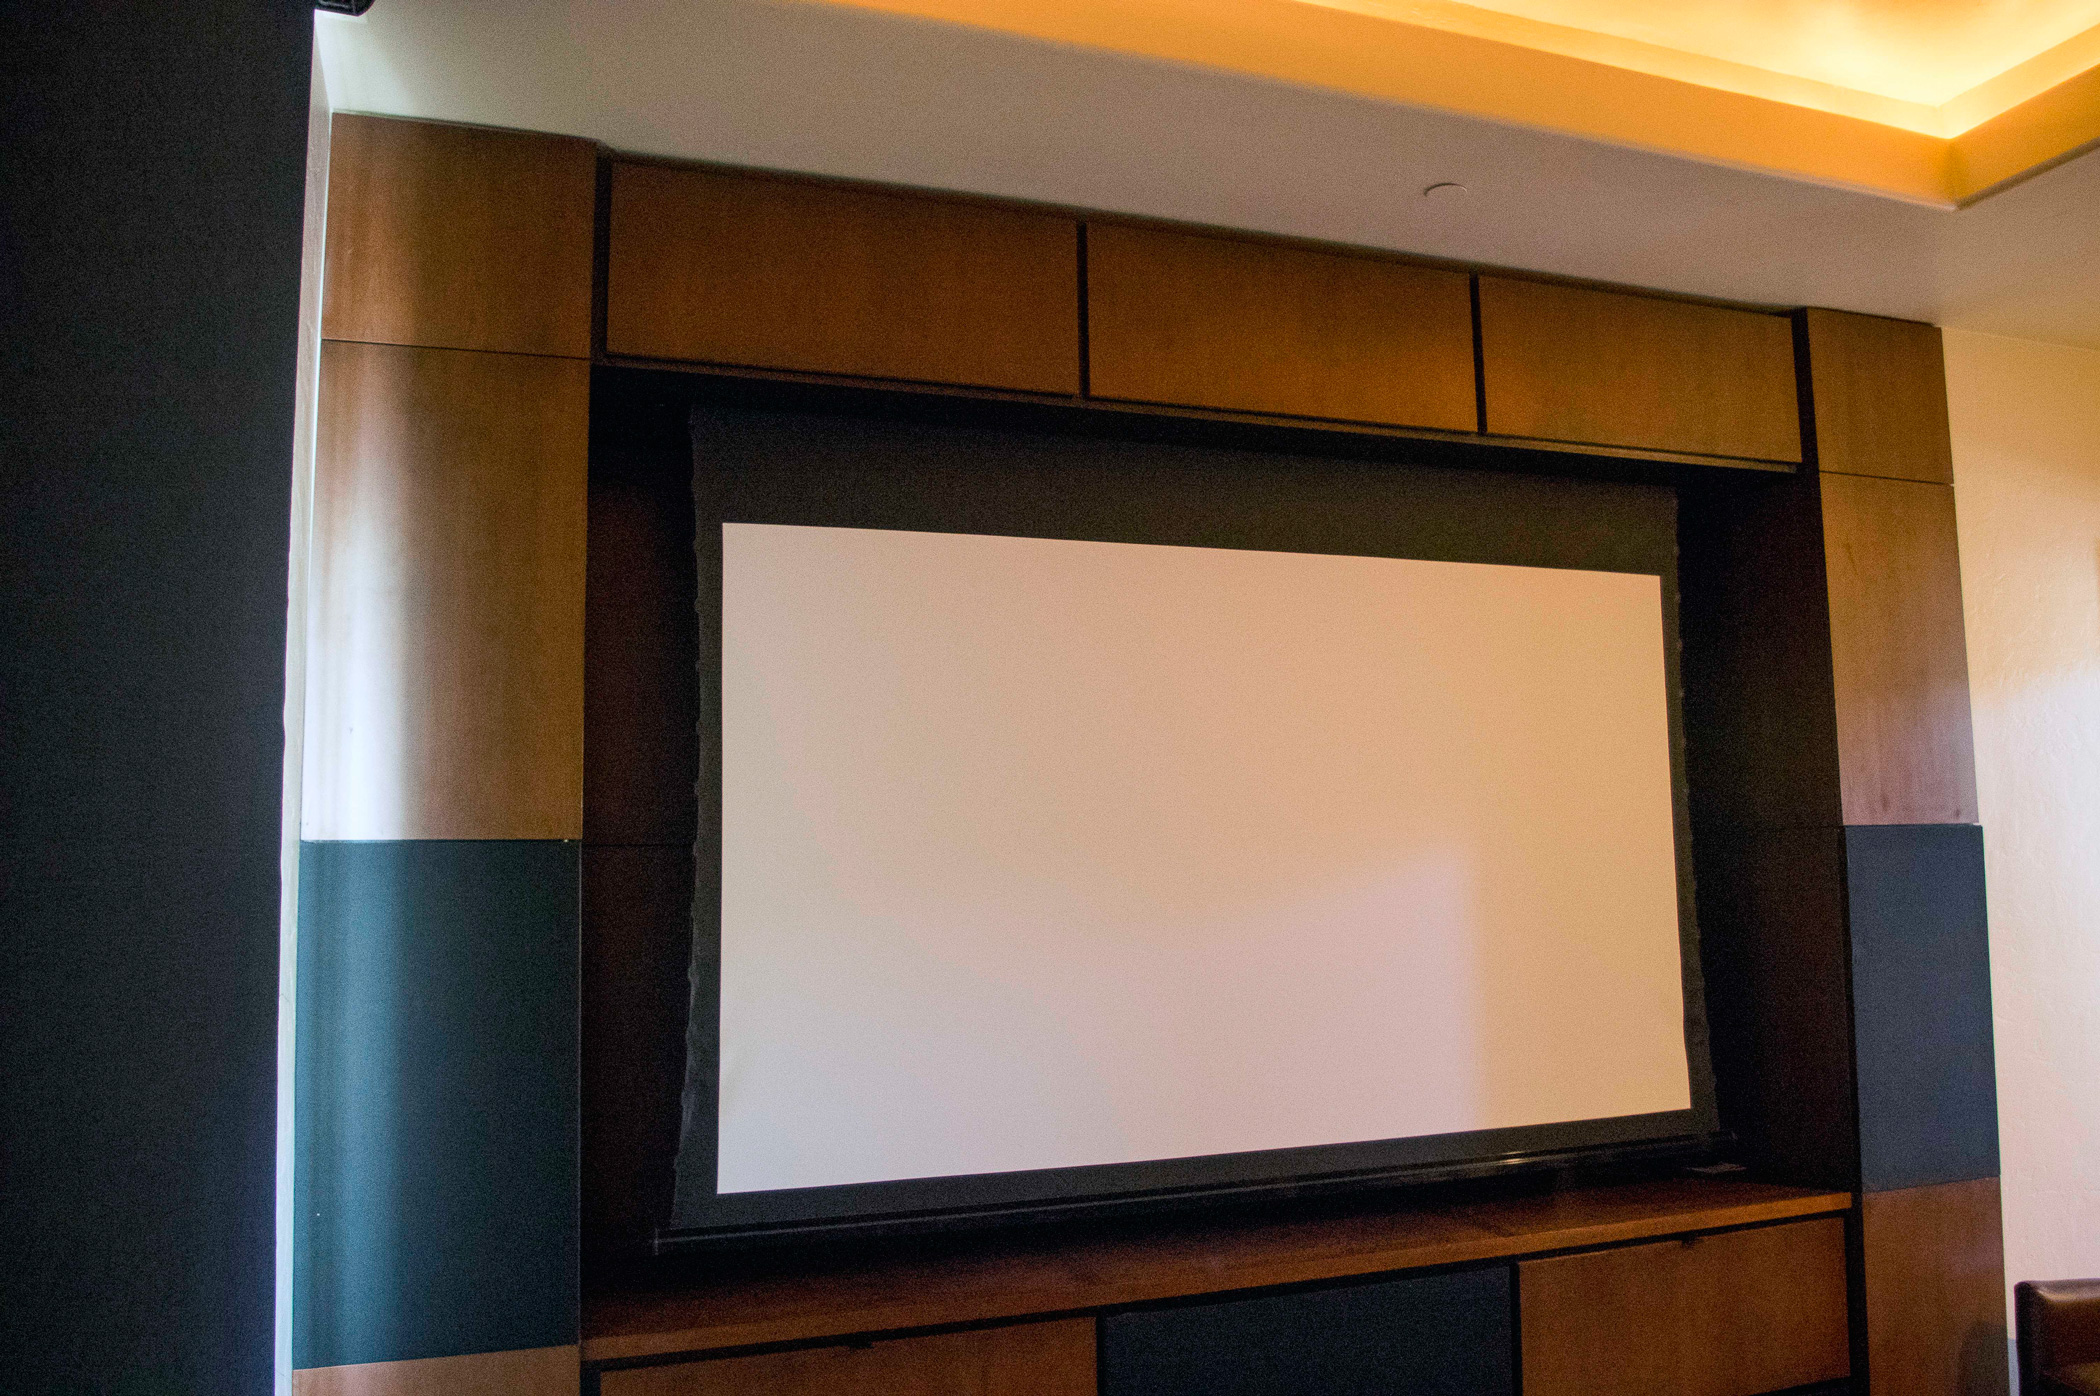 Automated projector screen in theate